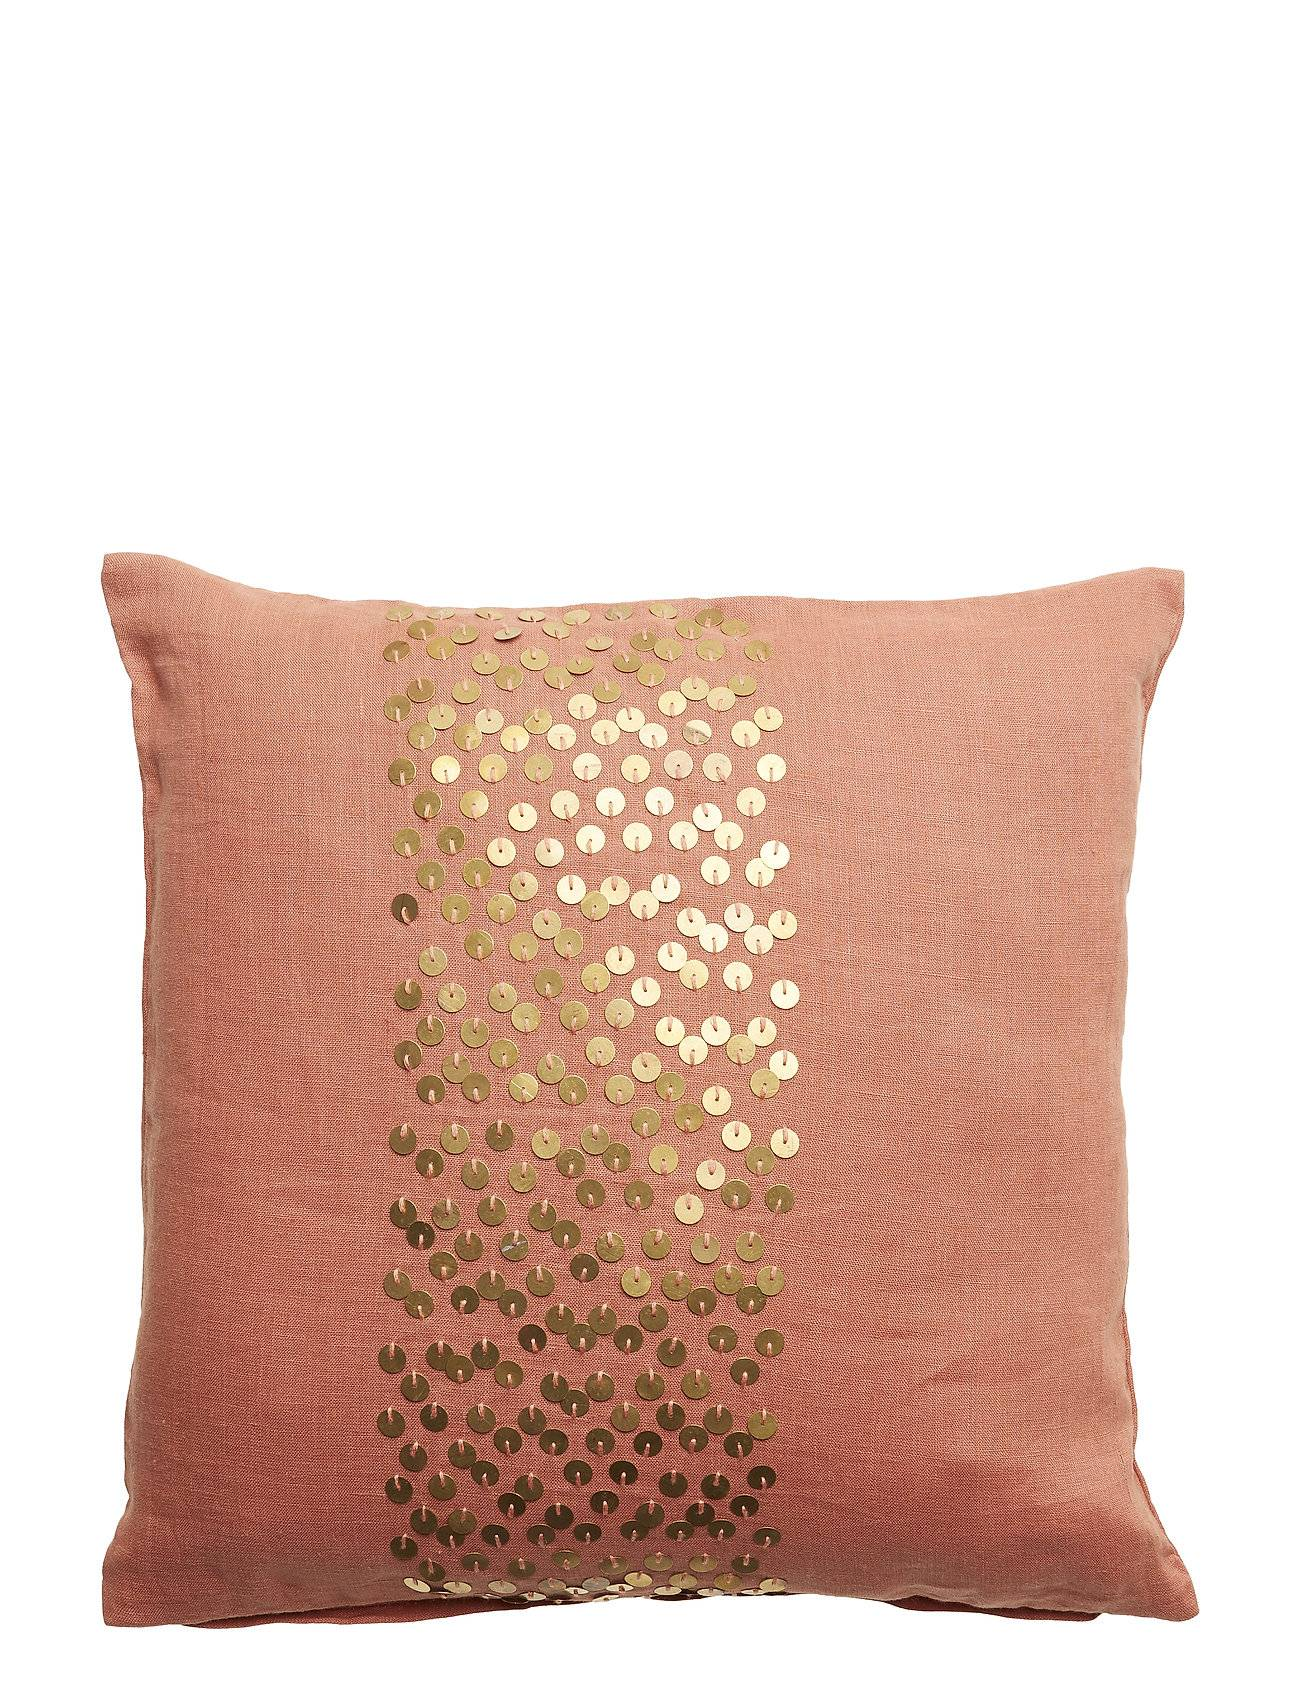 DAY Home Day Maroc Cushion Cover